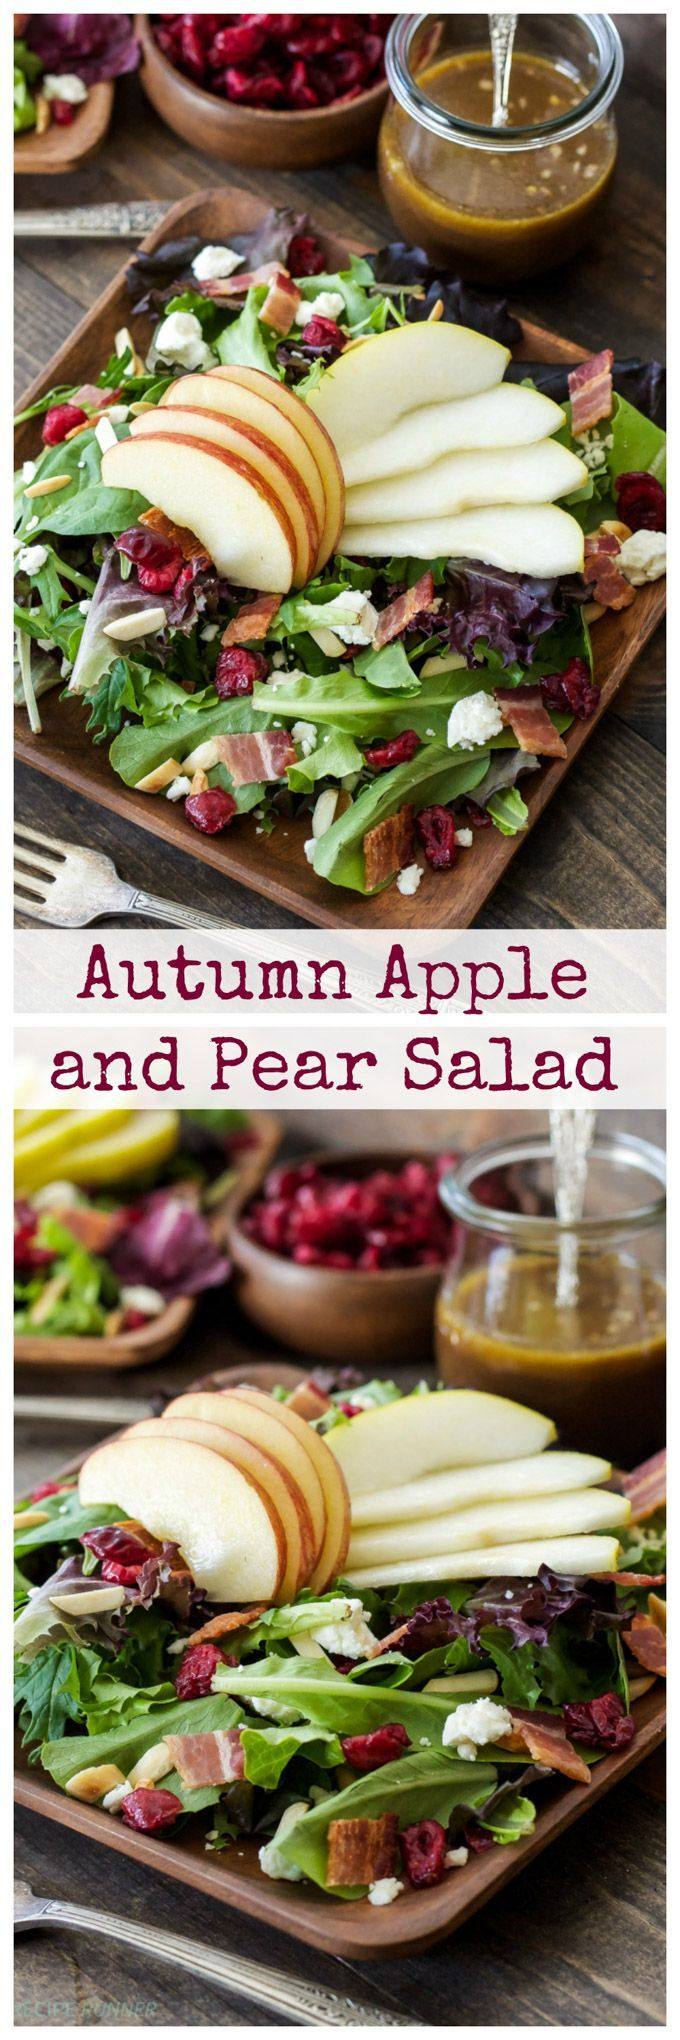 Autumn Apple and Pear Salad | Sweet pears and apples paired with salty feta and…